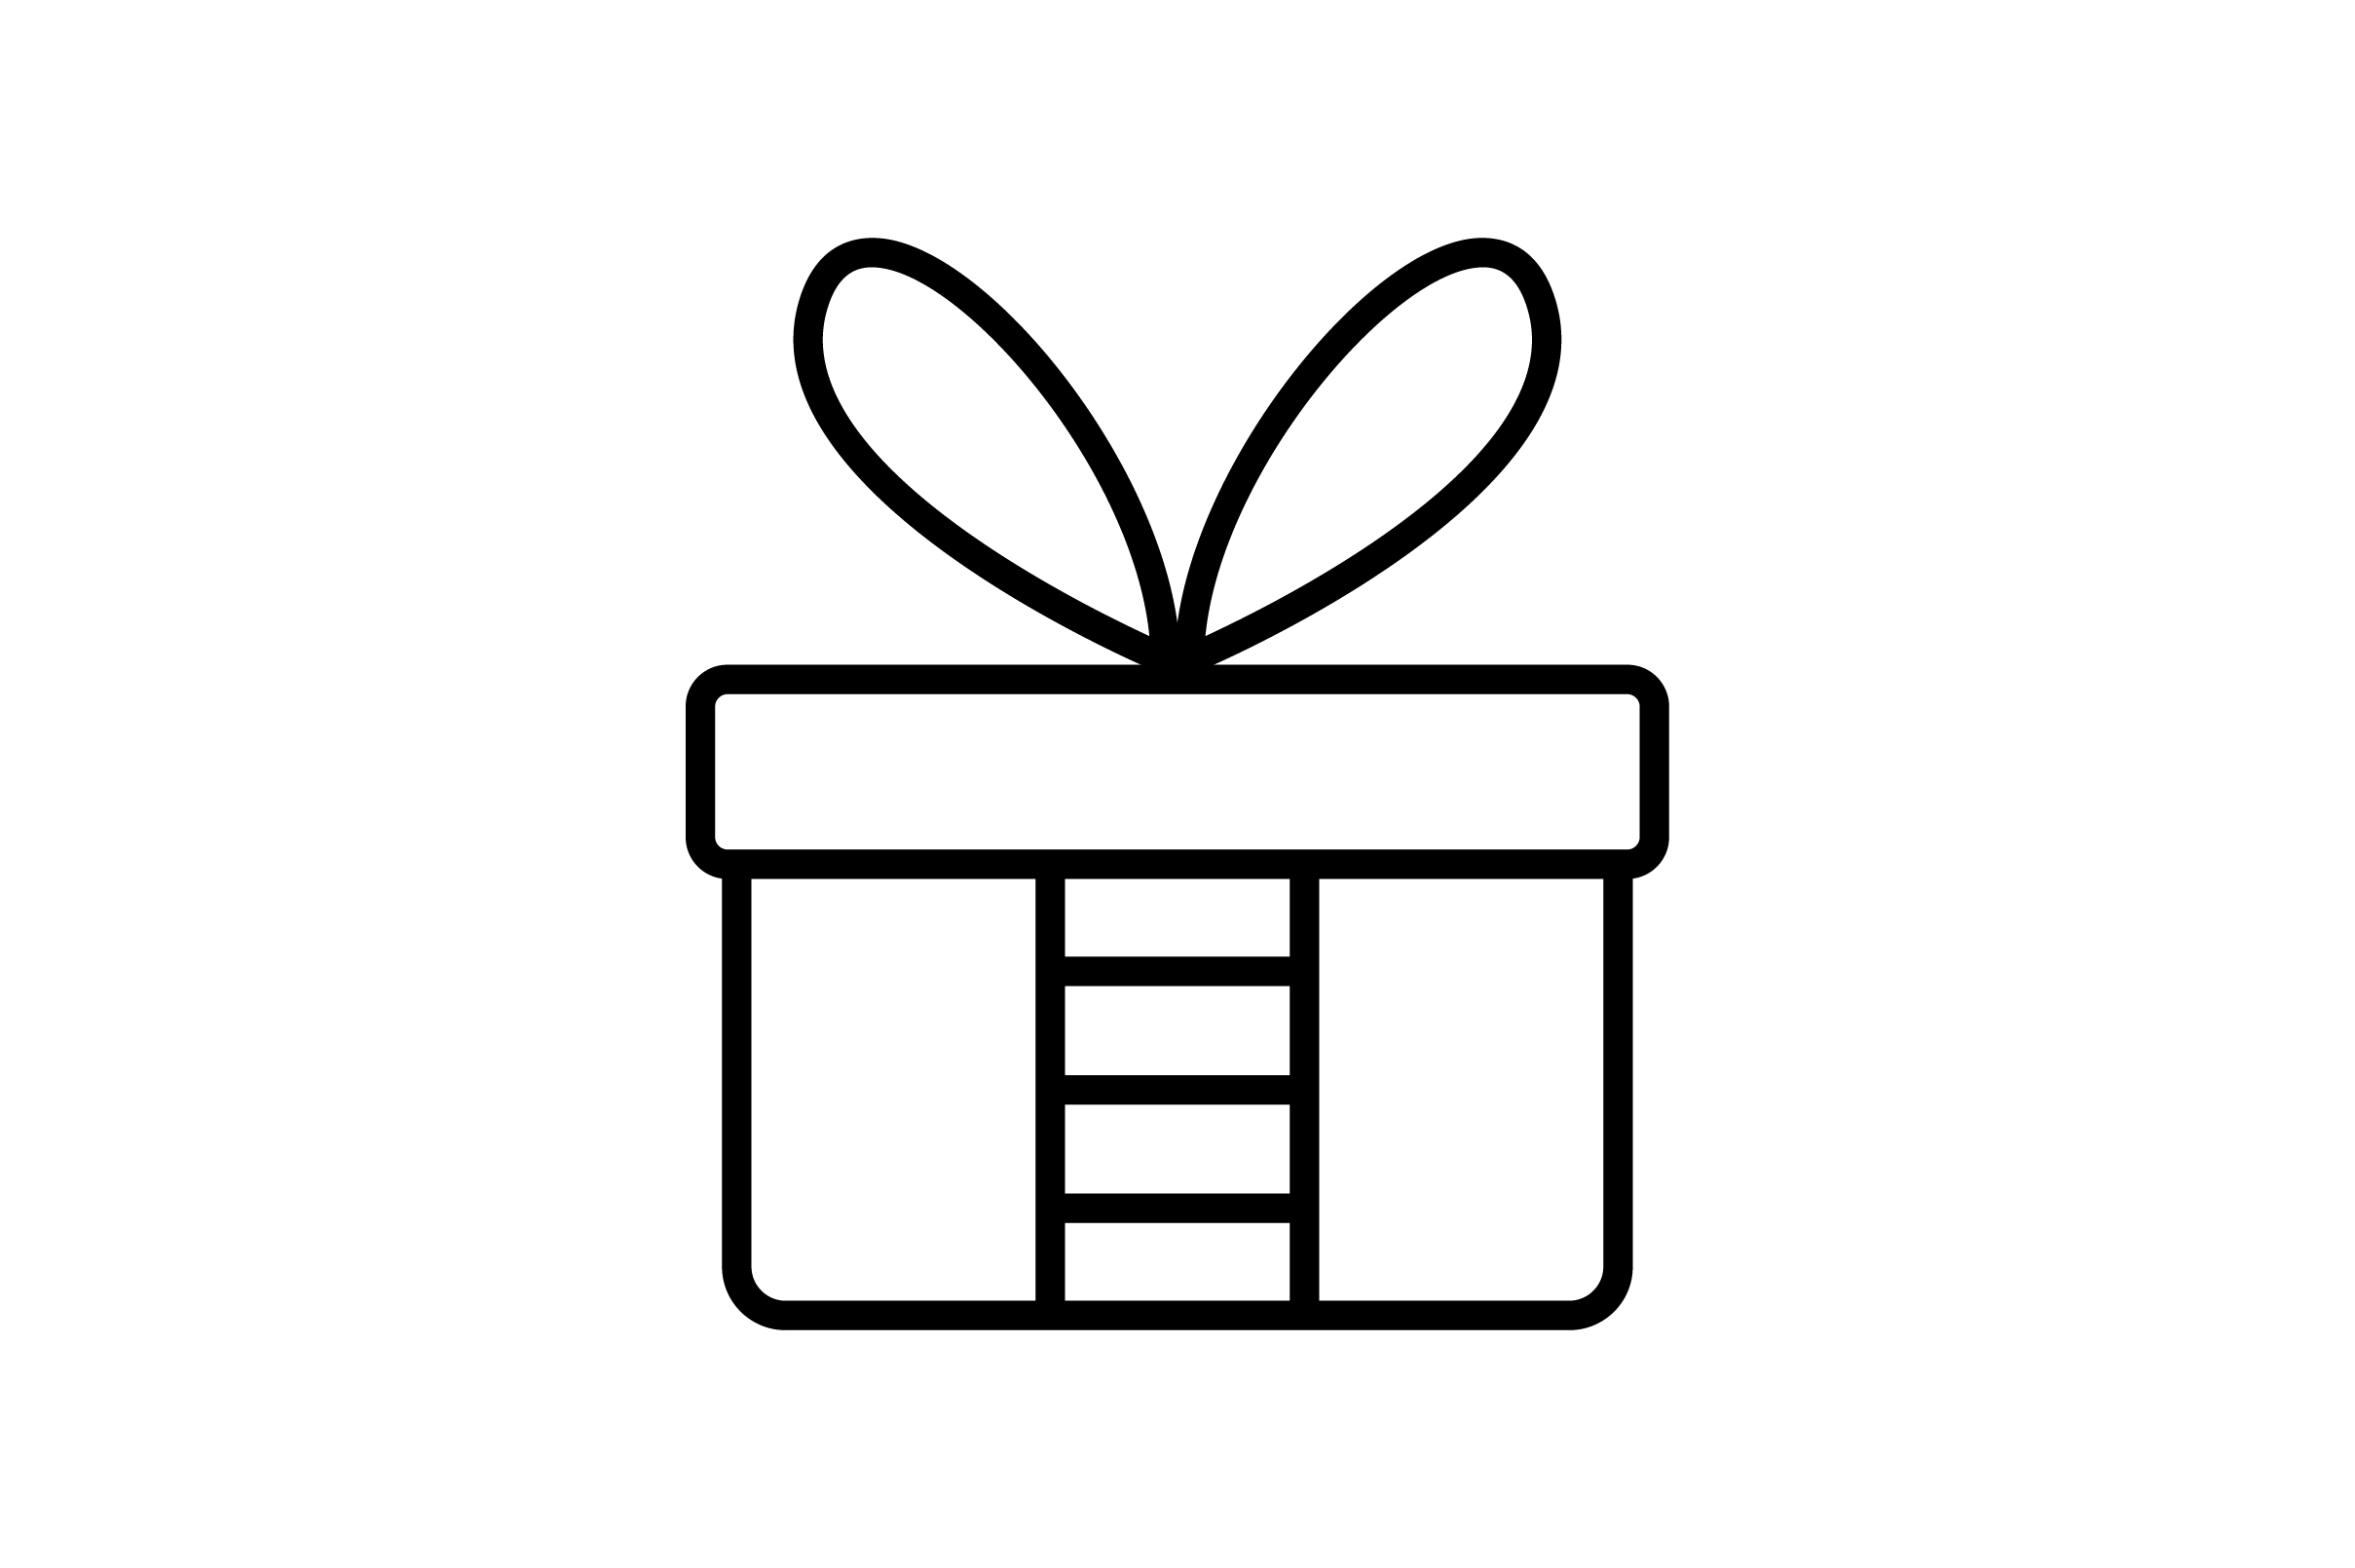 Download Free Gift Box Line Art Vector Icon Graphic By Riduwan Molla for Cricut Explore, Silhouette and other cutting machines.